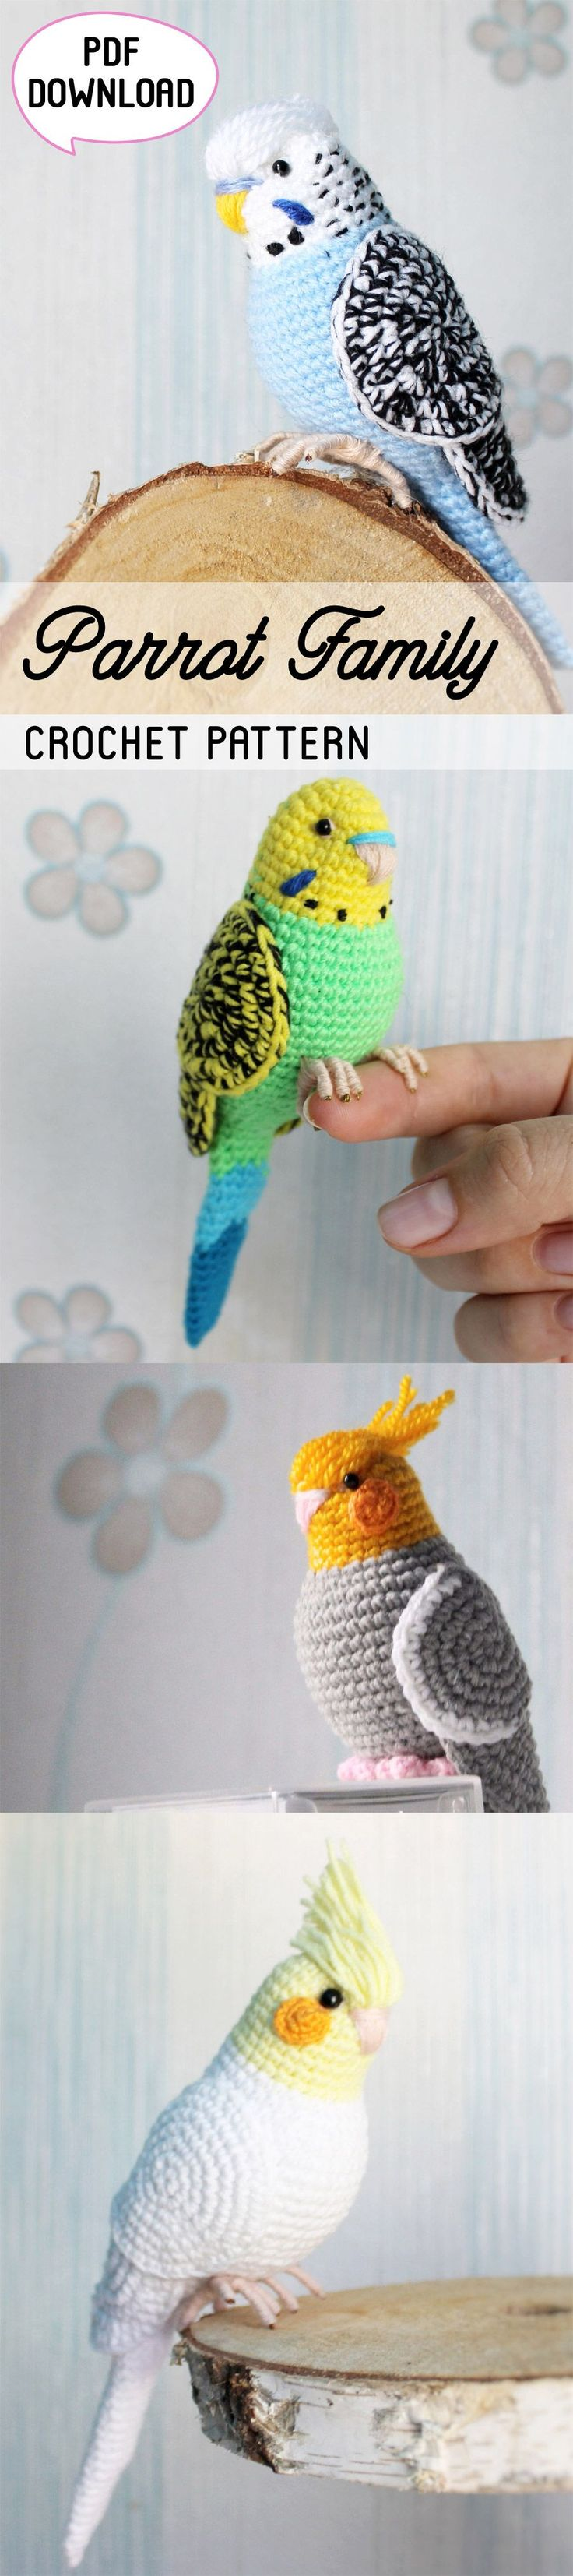 Parrot Crochet Pattern - this cute amigurumi pattern is available in four variations. These fun budgies would be perfect as home decor items for kids room, as toys or as a cute gift for a friend. #ad #etsy #crochetpattern #amigurumi #crochet #amigurumipattern #patternsforcrochet #parrothacks